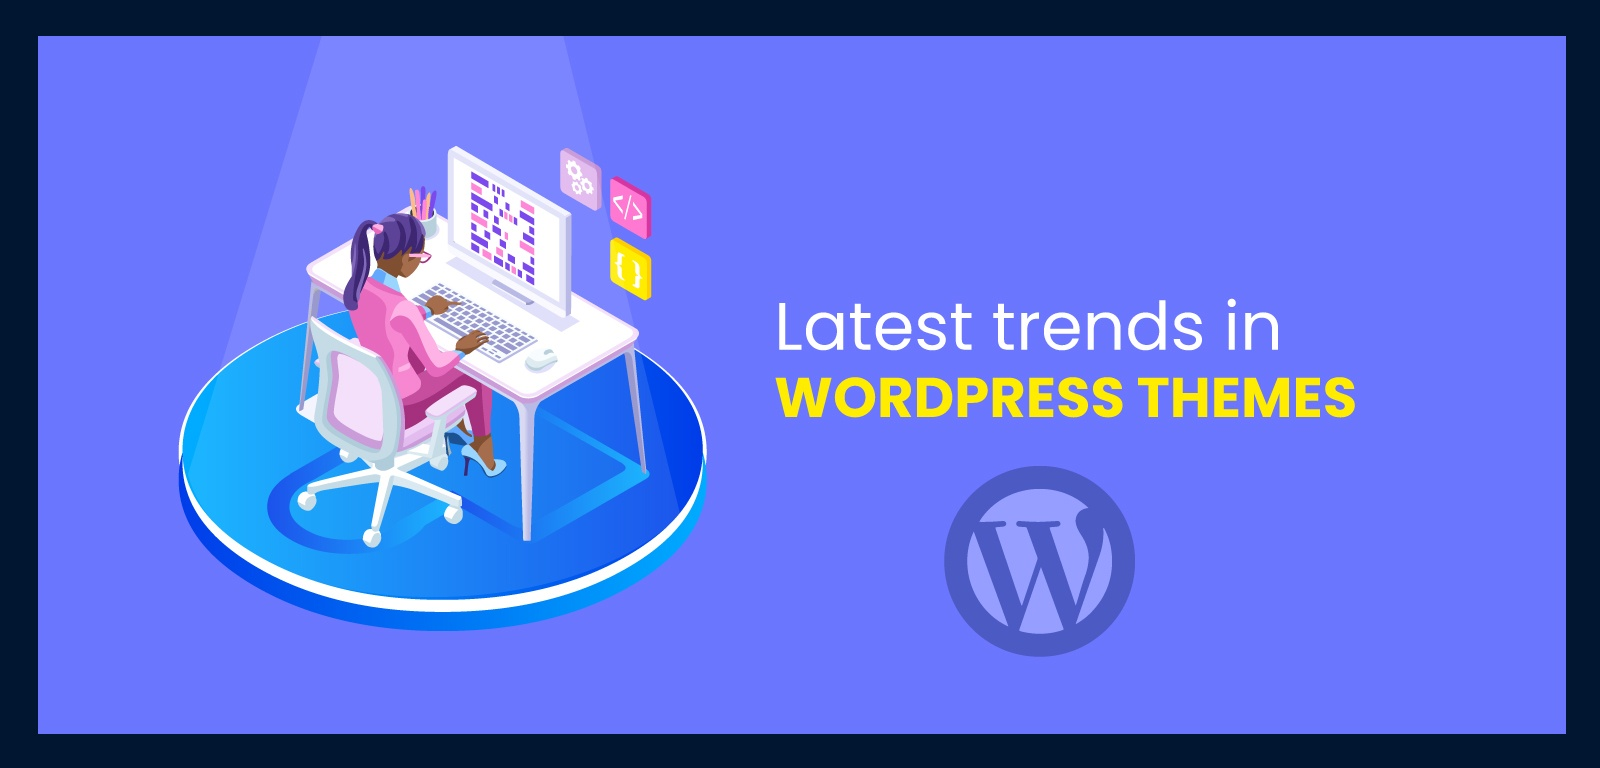 Latest trends in WordPress themes